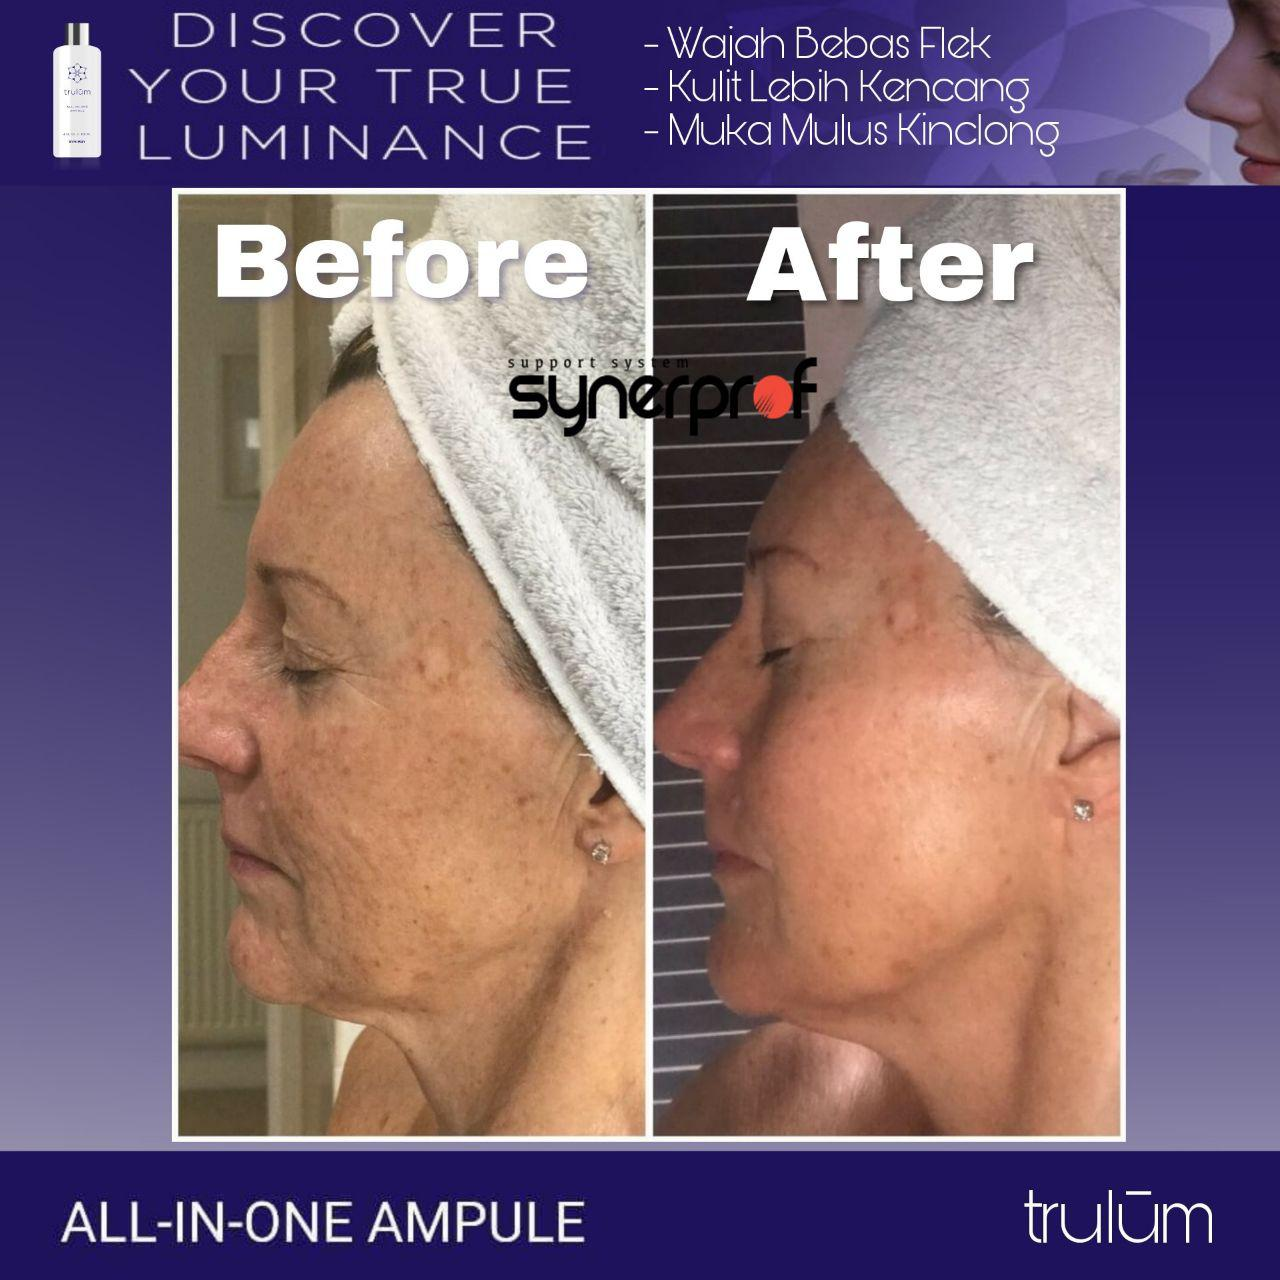 Klinik aesthetic Trulum All In One Ampoule Di Ogan Komering Ilir